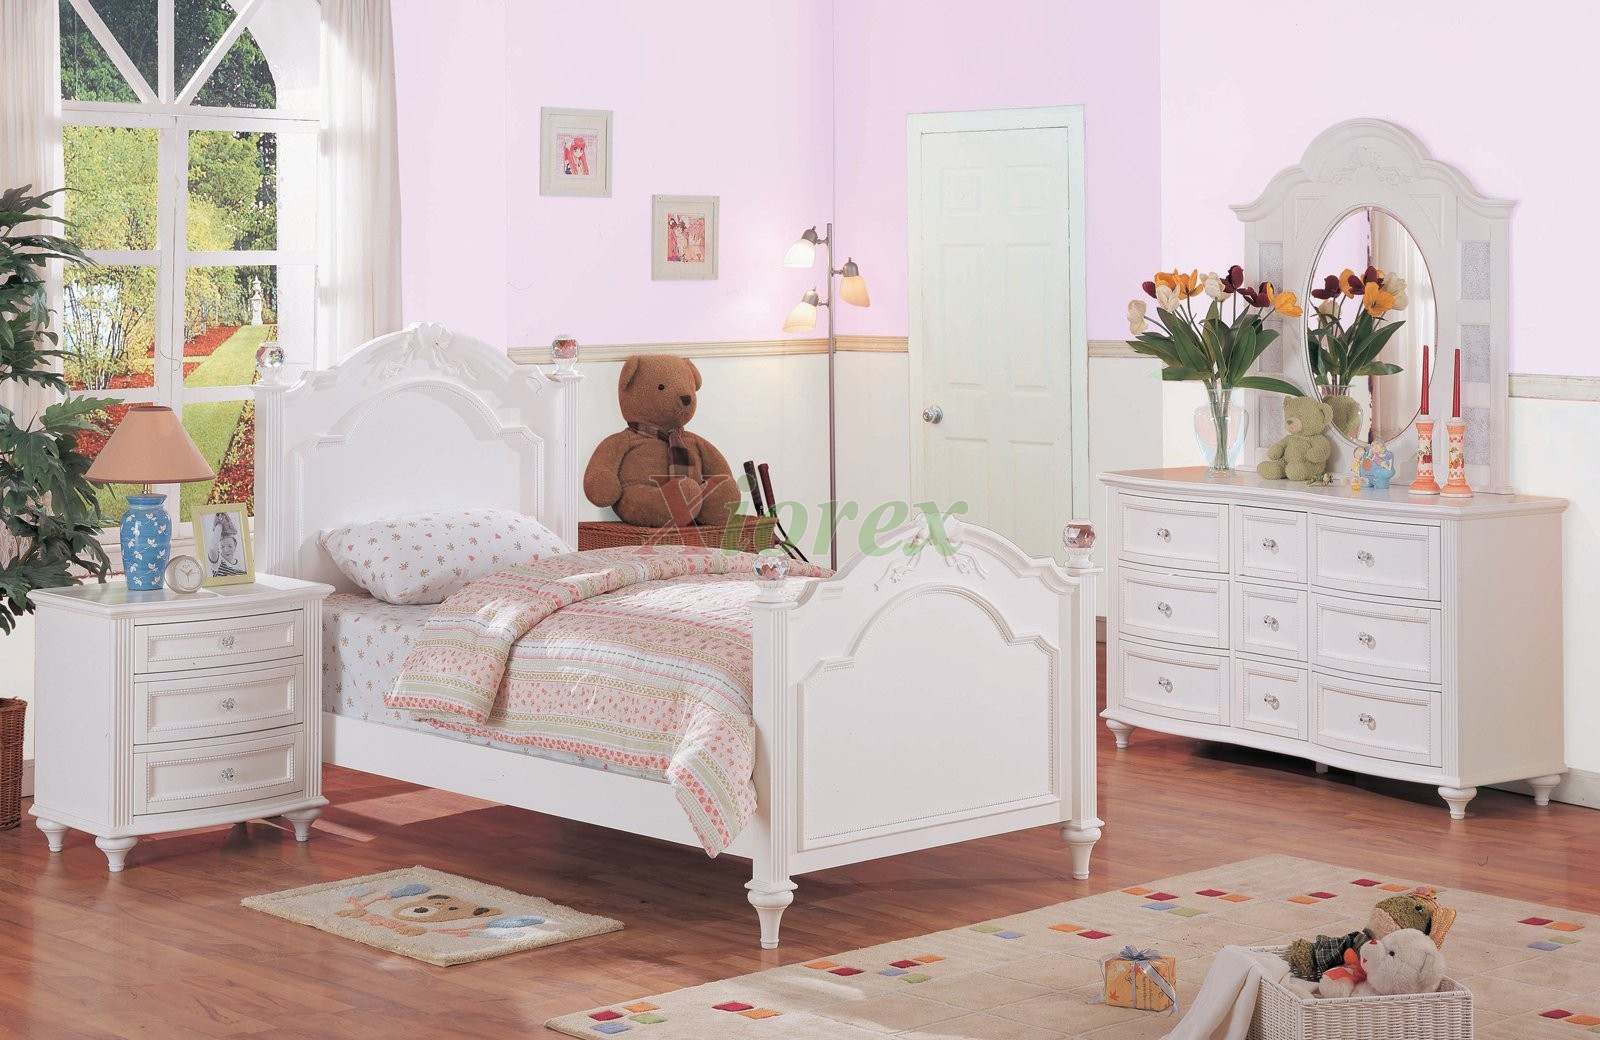 Kids bed furniture - White Kids Poster Bedroom Furniture Set 175 Xiorex Not Available In The Us